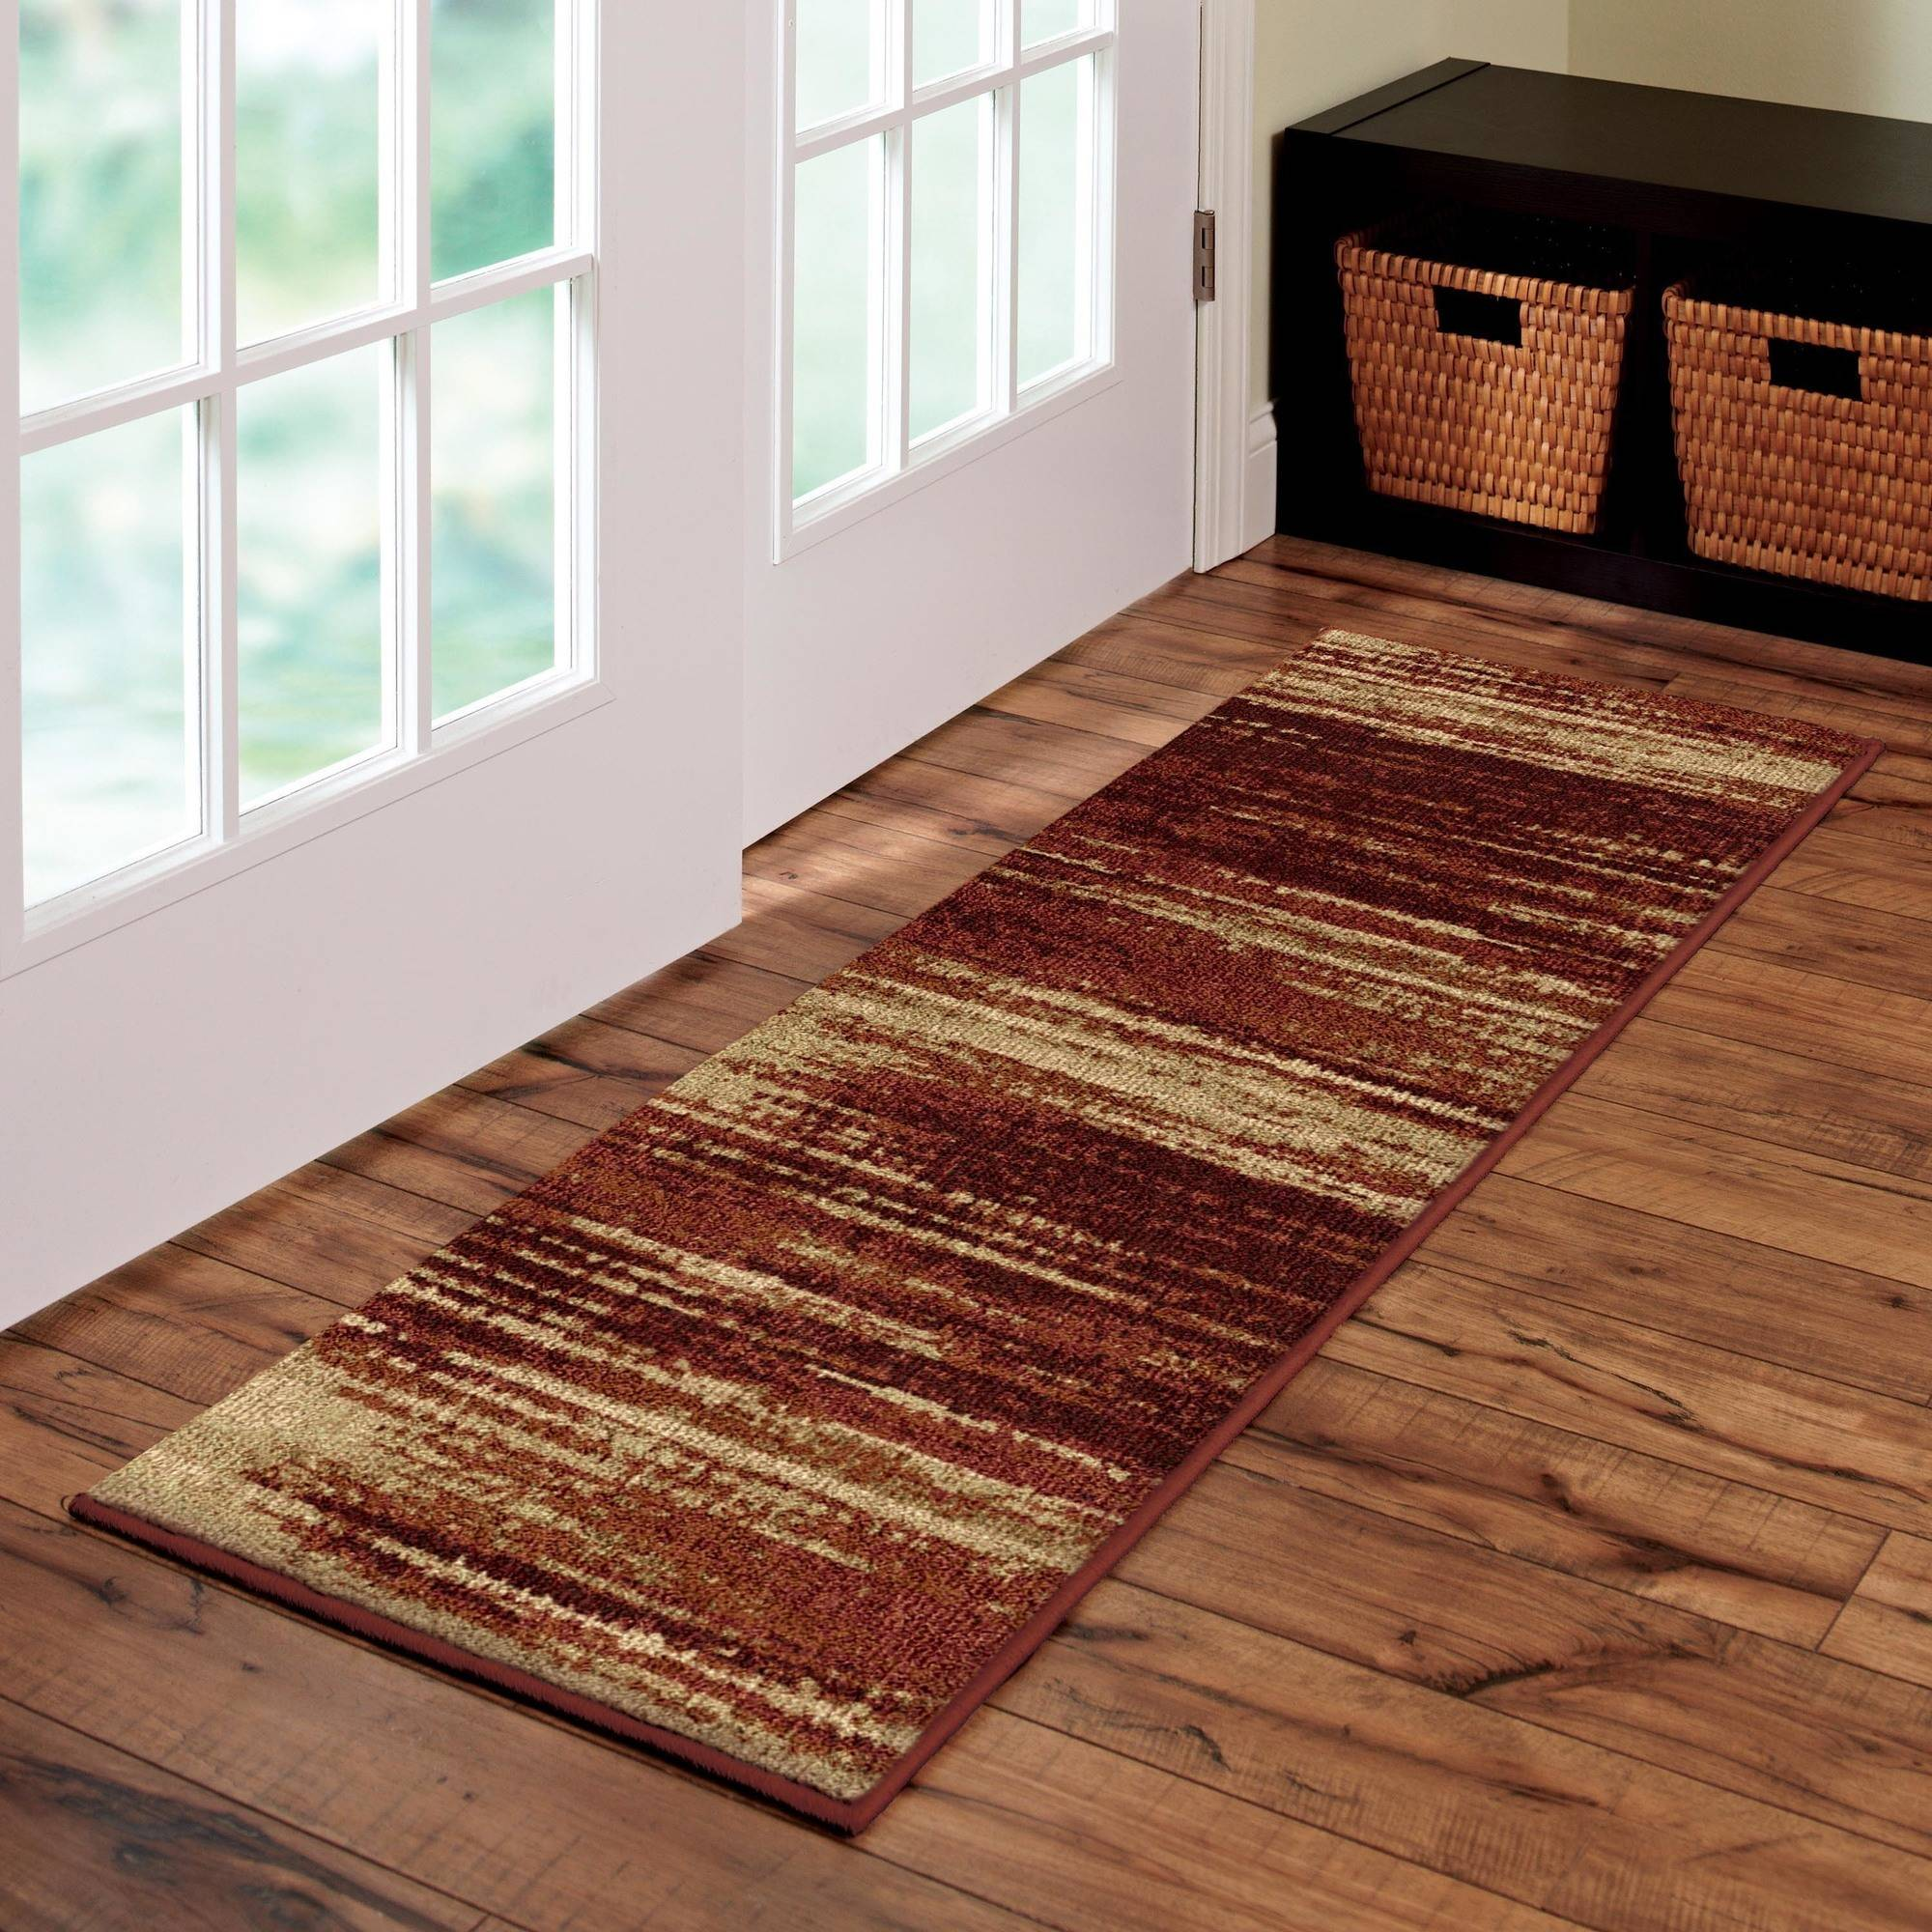 Better Homes and Gardens Shaded Lines Area Rug or Runner | eBay